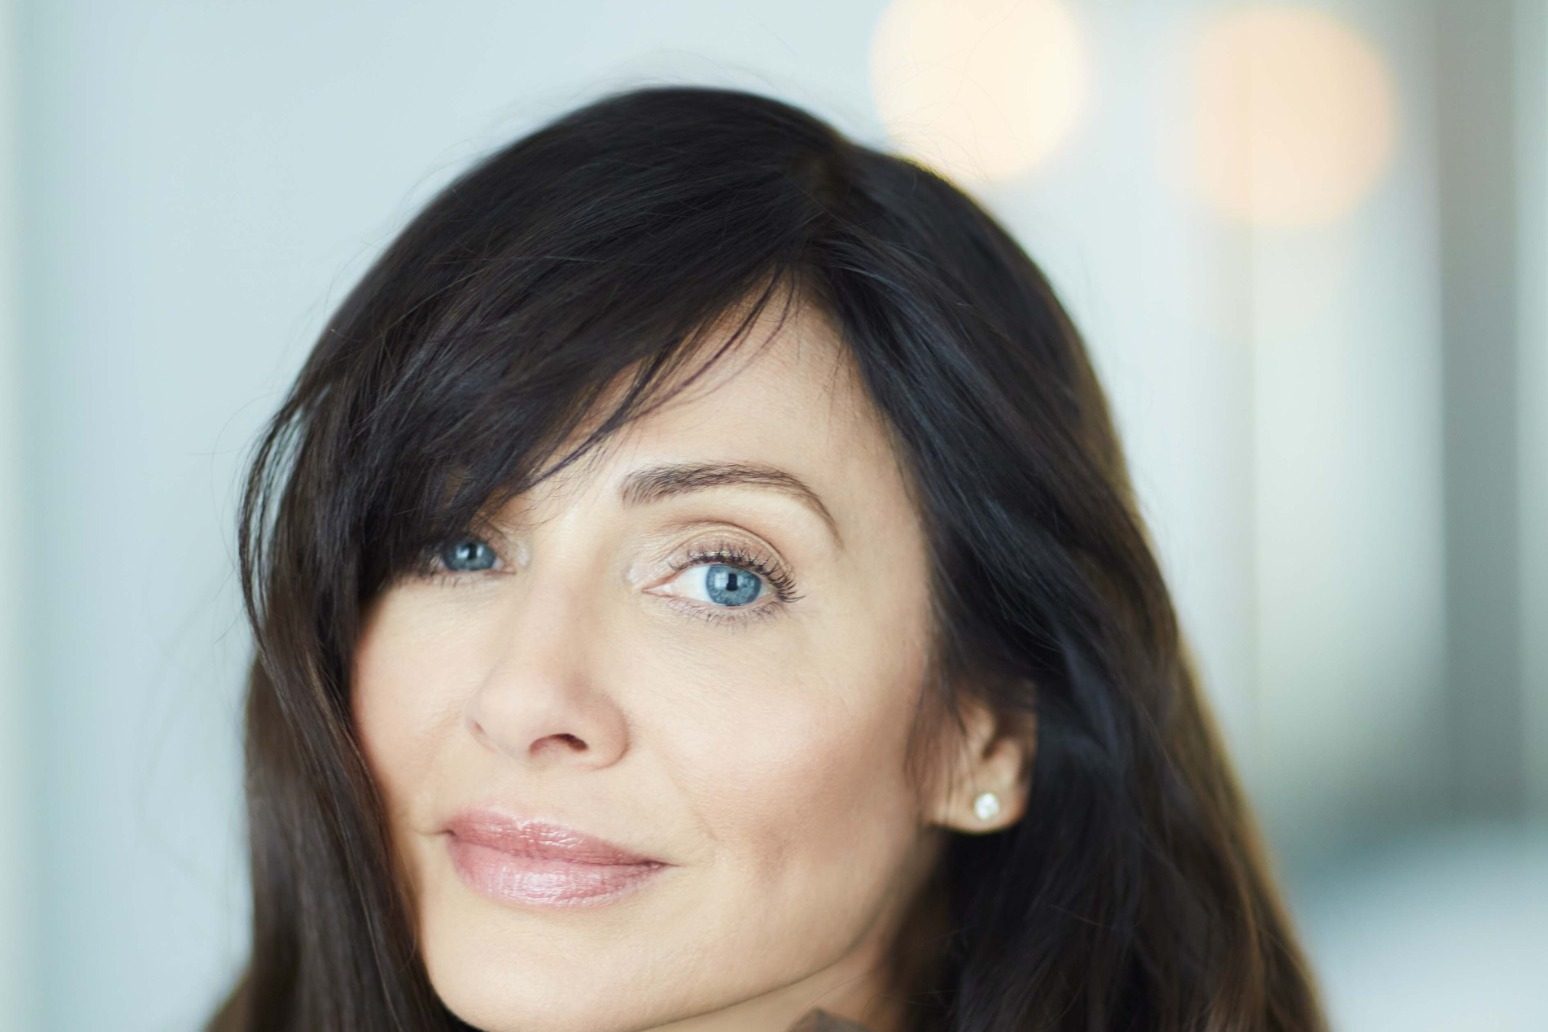 Natalie Imbruglia bids to help normalise women becoming mothers with sperm donor